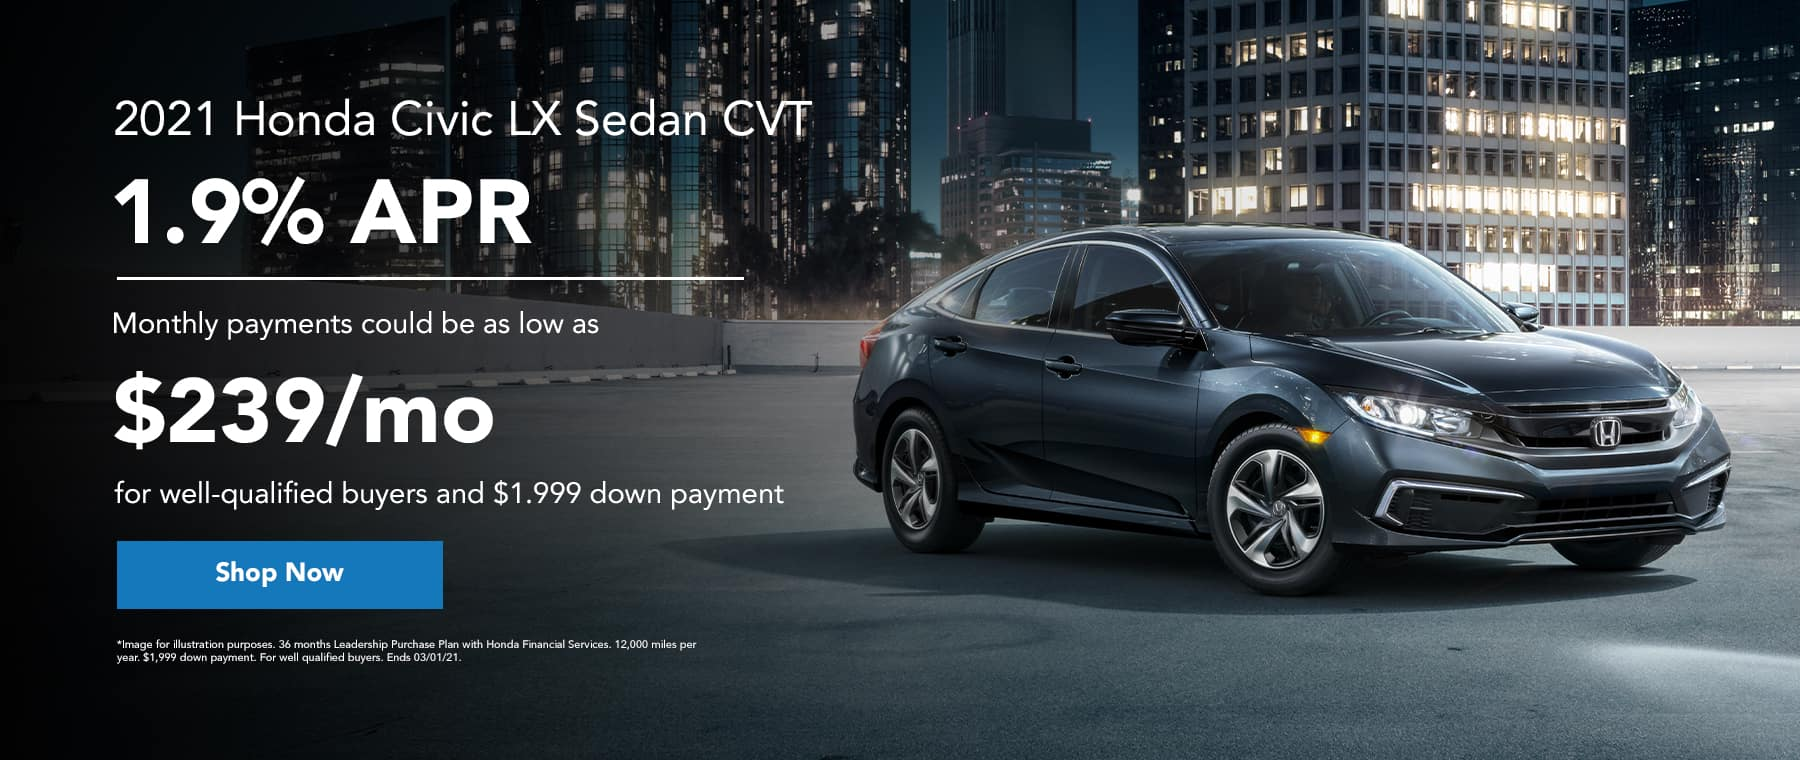 2021 Honda Civic LX Sedan CVT - 1.9% APR - monthly payments could be as low as $239/mo